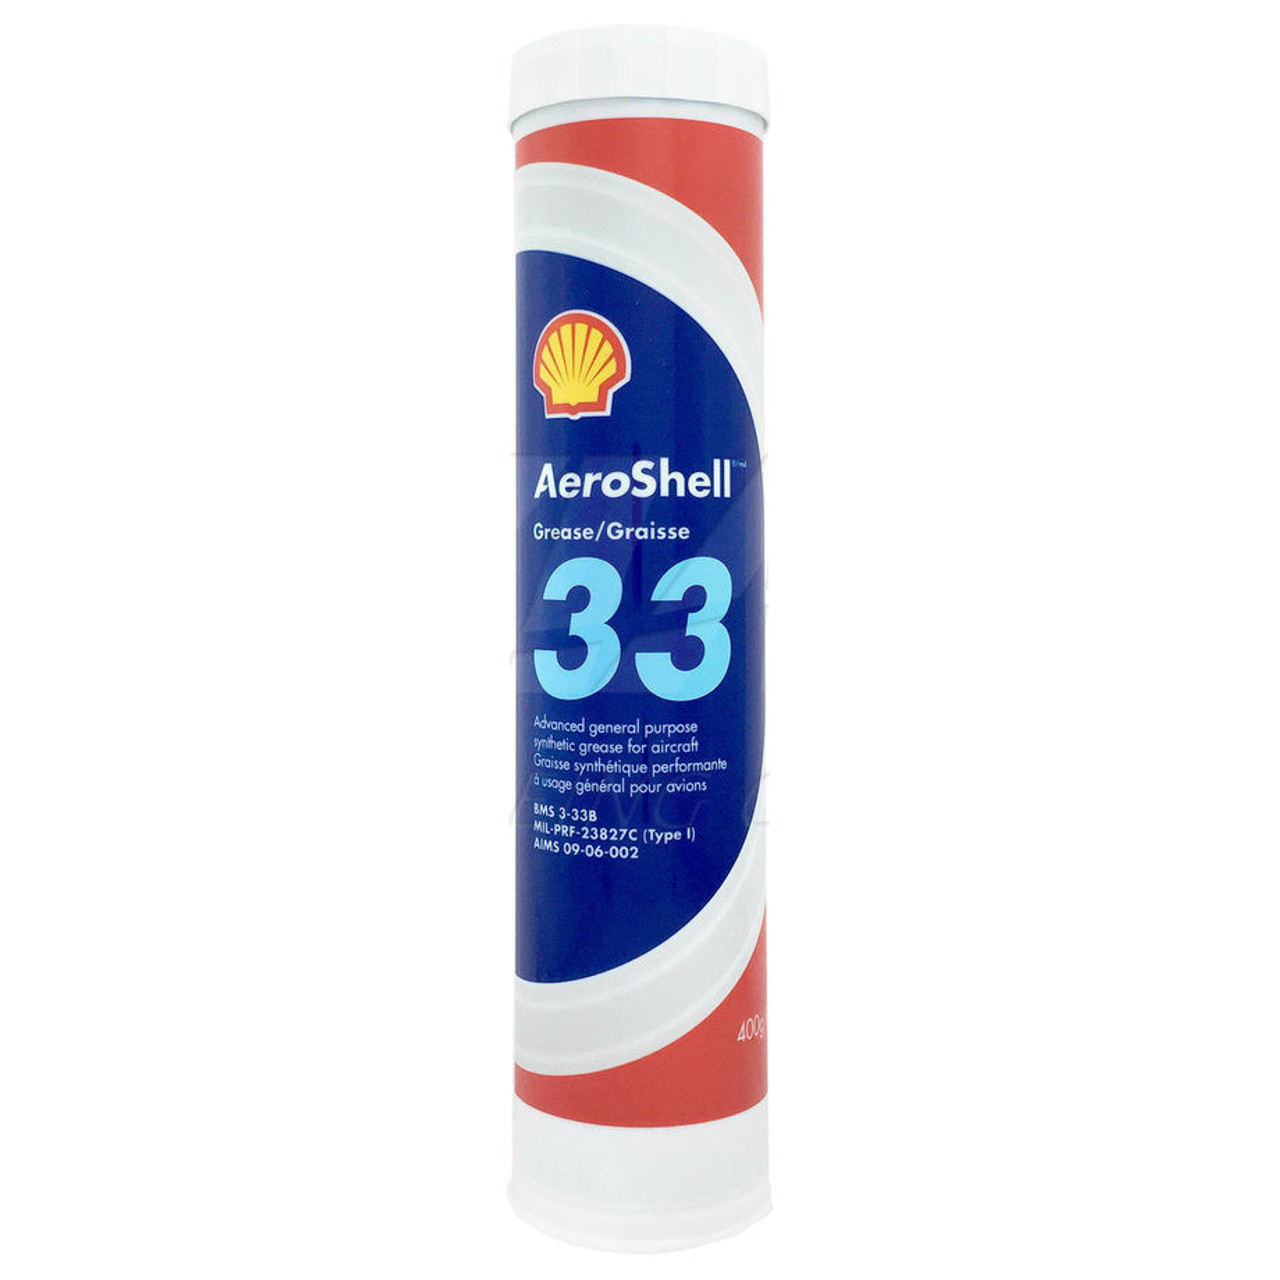 AeroShell Grease 33 - Universal Airframe Grease - 14oz